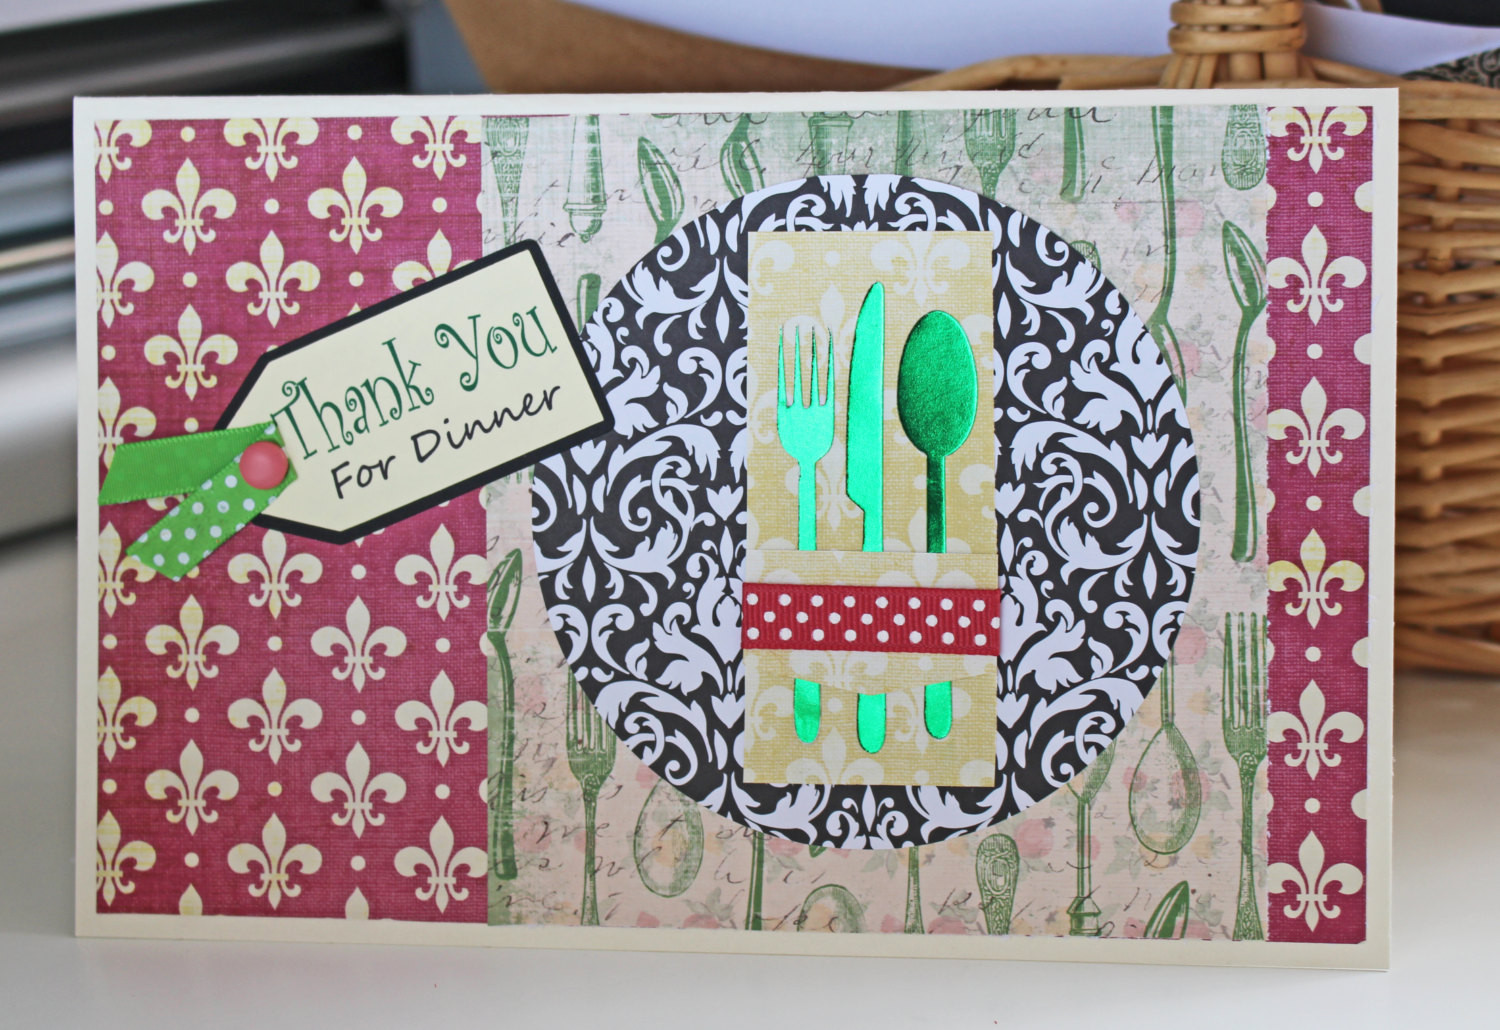 Thanks For Dinner  Thank You for Dinner Card Hostess Card Place Setting